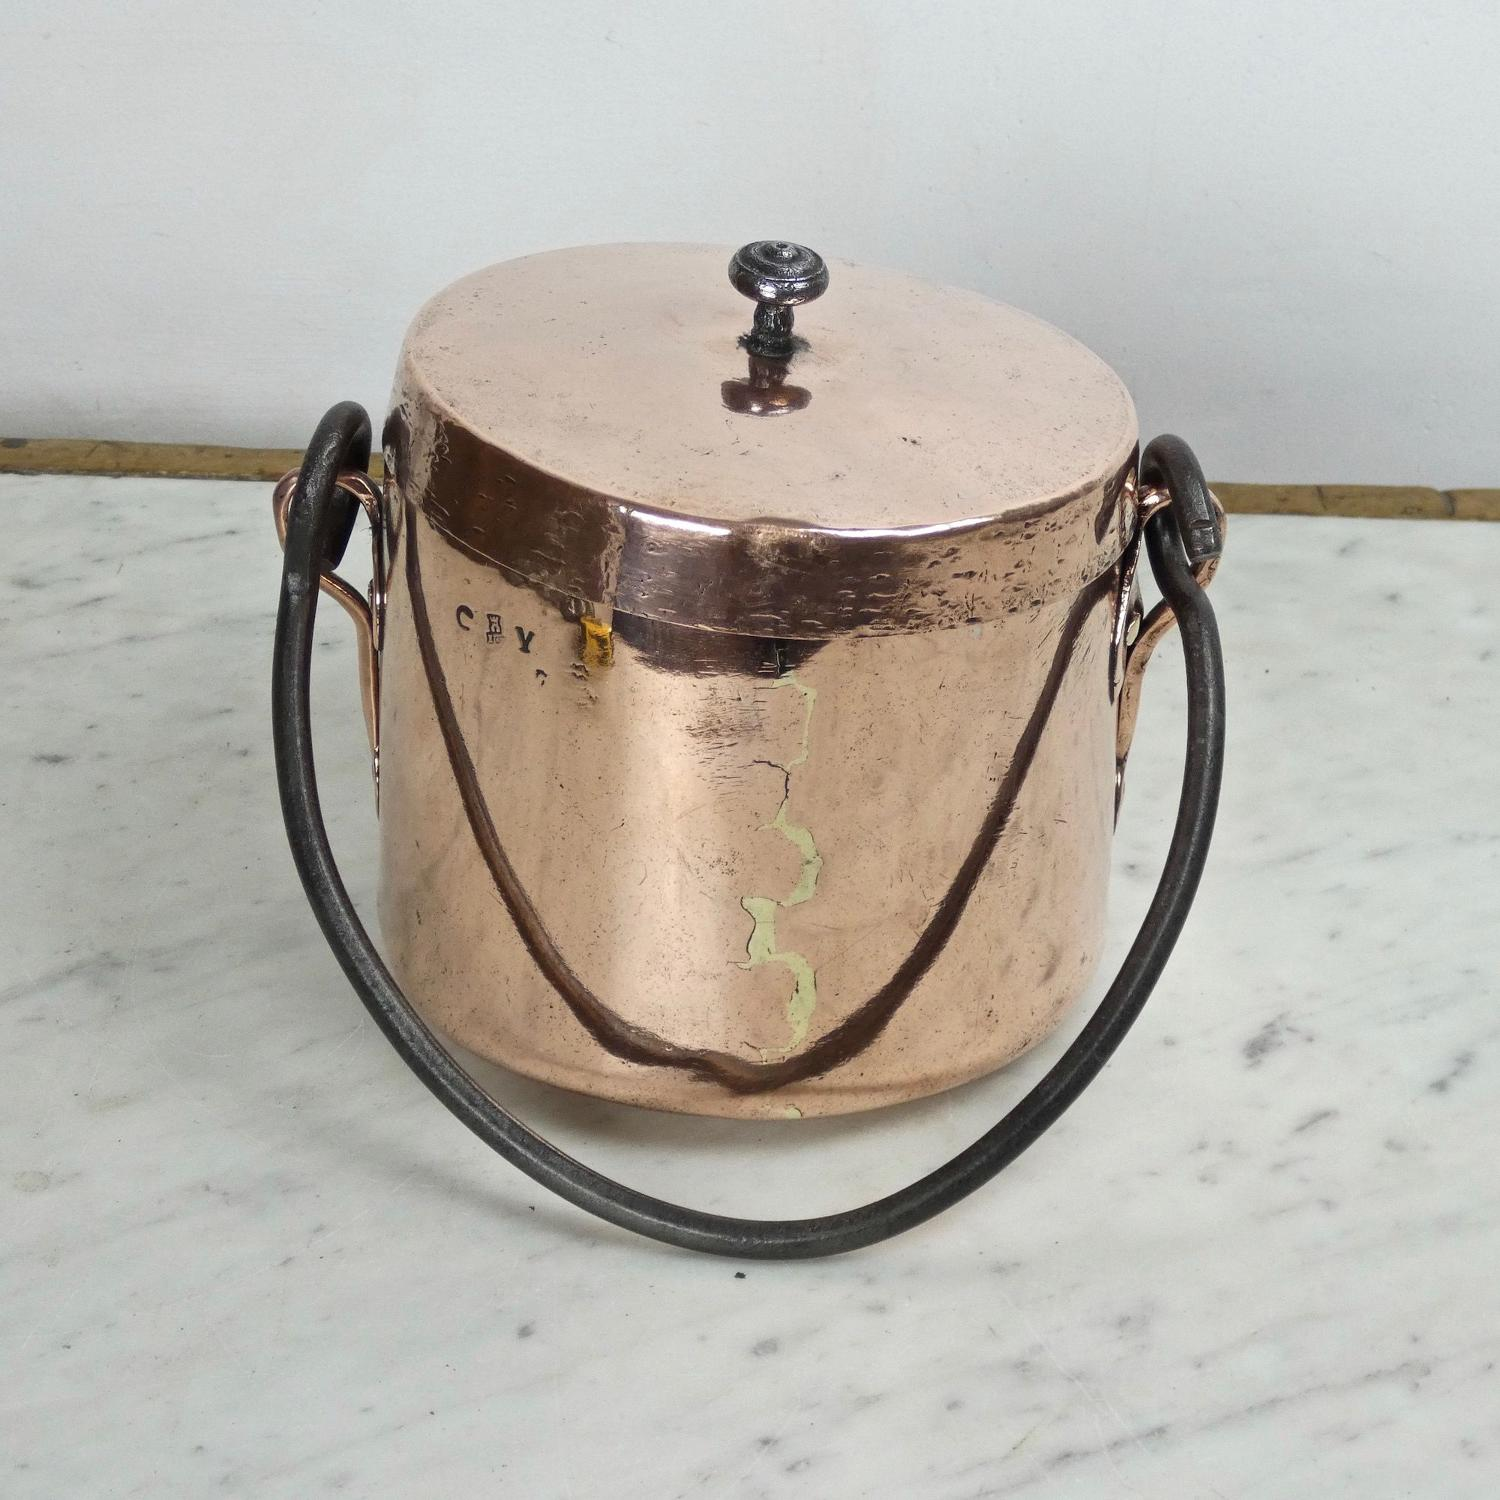 Small, French copper cooking pot